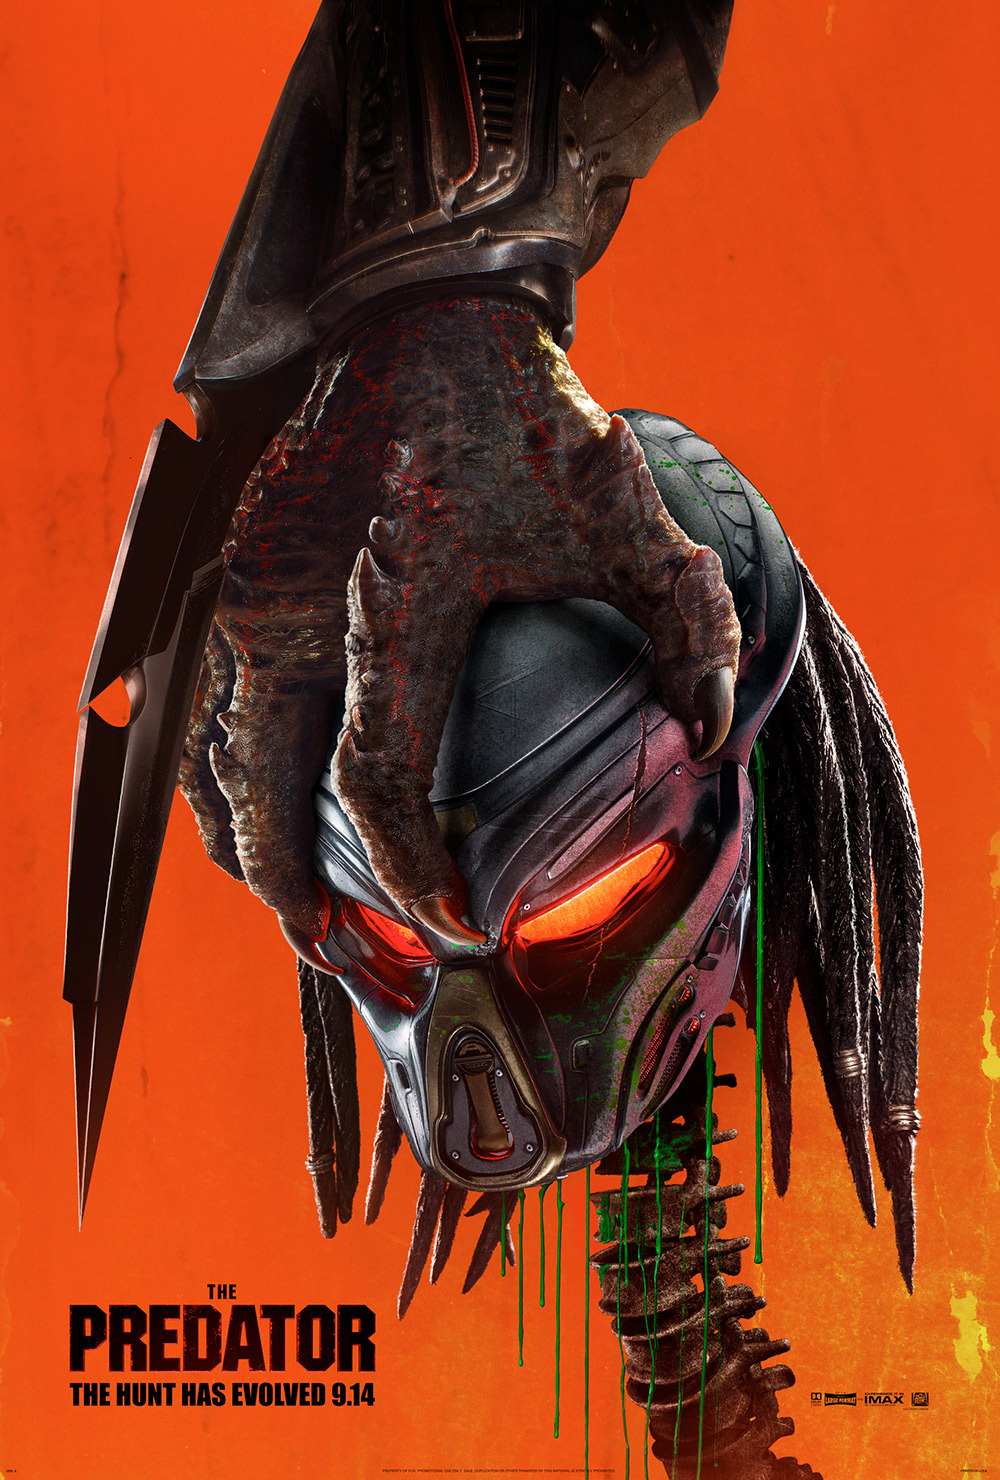 The Predator bursts back into theaters for the first time since 2008. This new iteration of the Predator franchise crushes the box office, topping it with 24 million dollars.